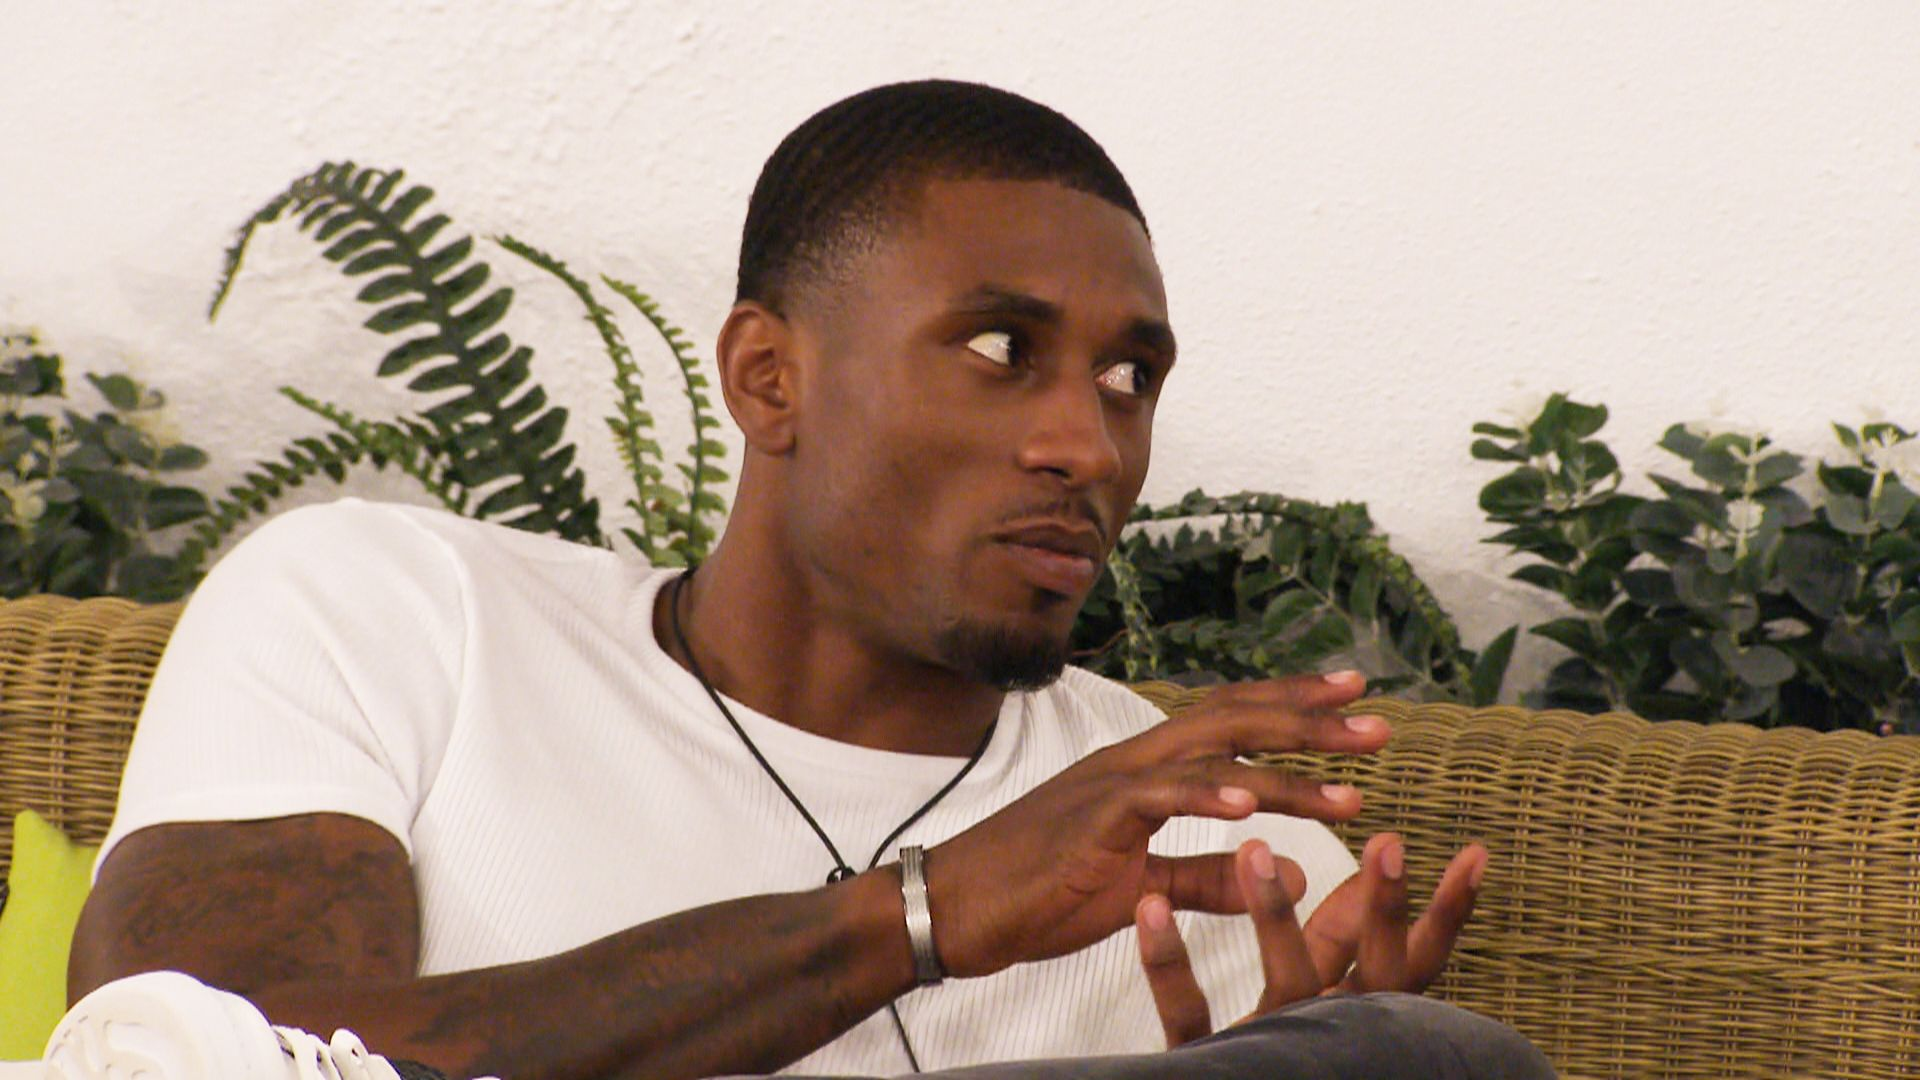 Love Island's Ovie Soko responds to claims he cheated on girlfriend India Reynolds with Maya Jama